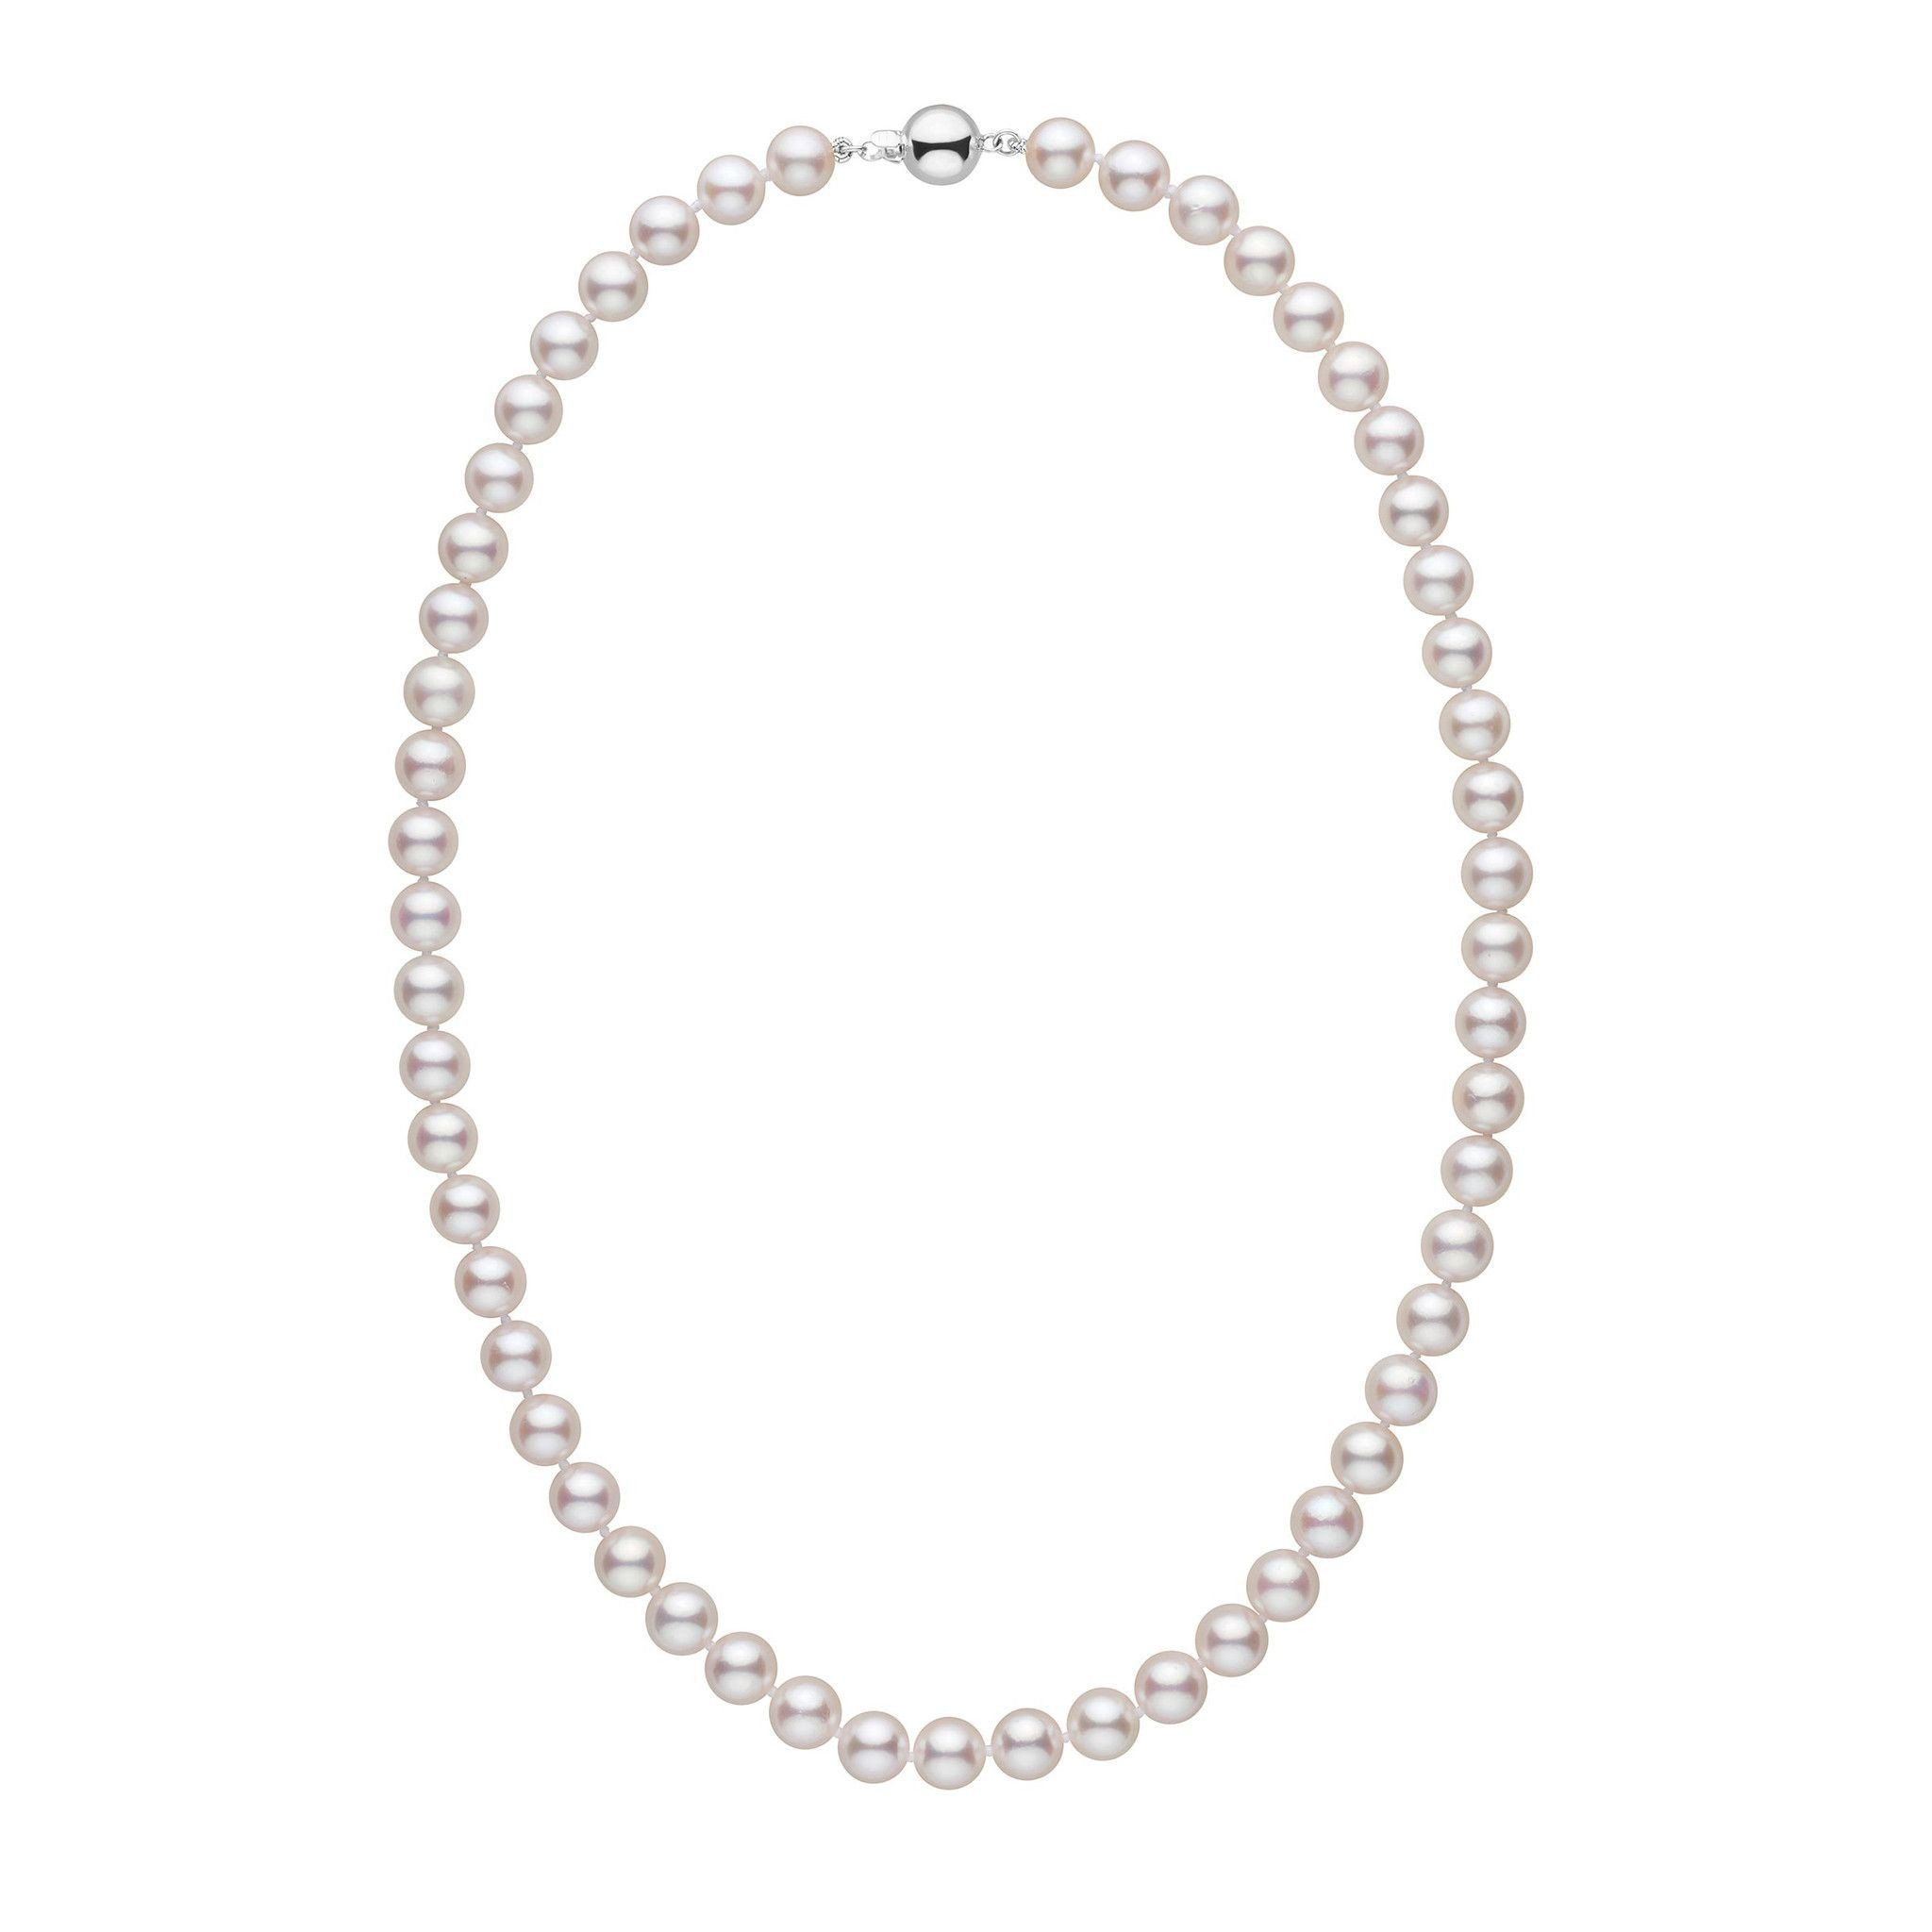 7.5-8.0 mm 18 inch AAA White Akoya Pearl Necklace